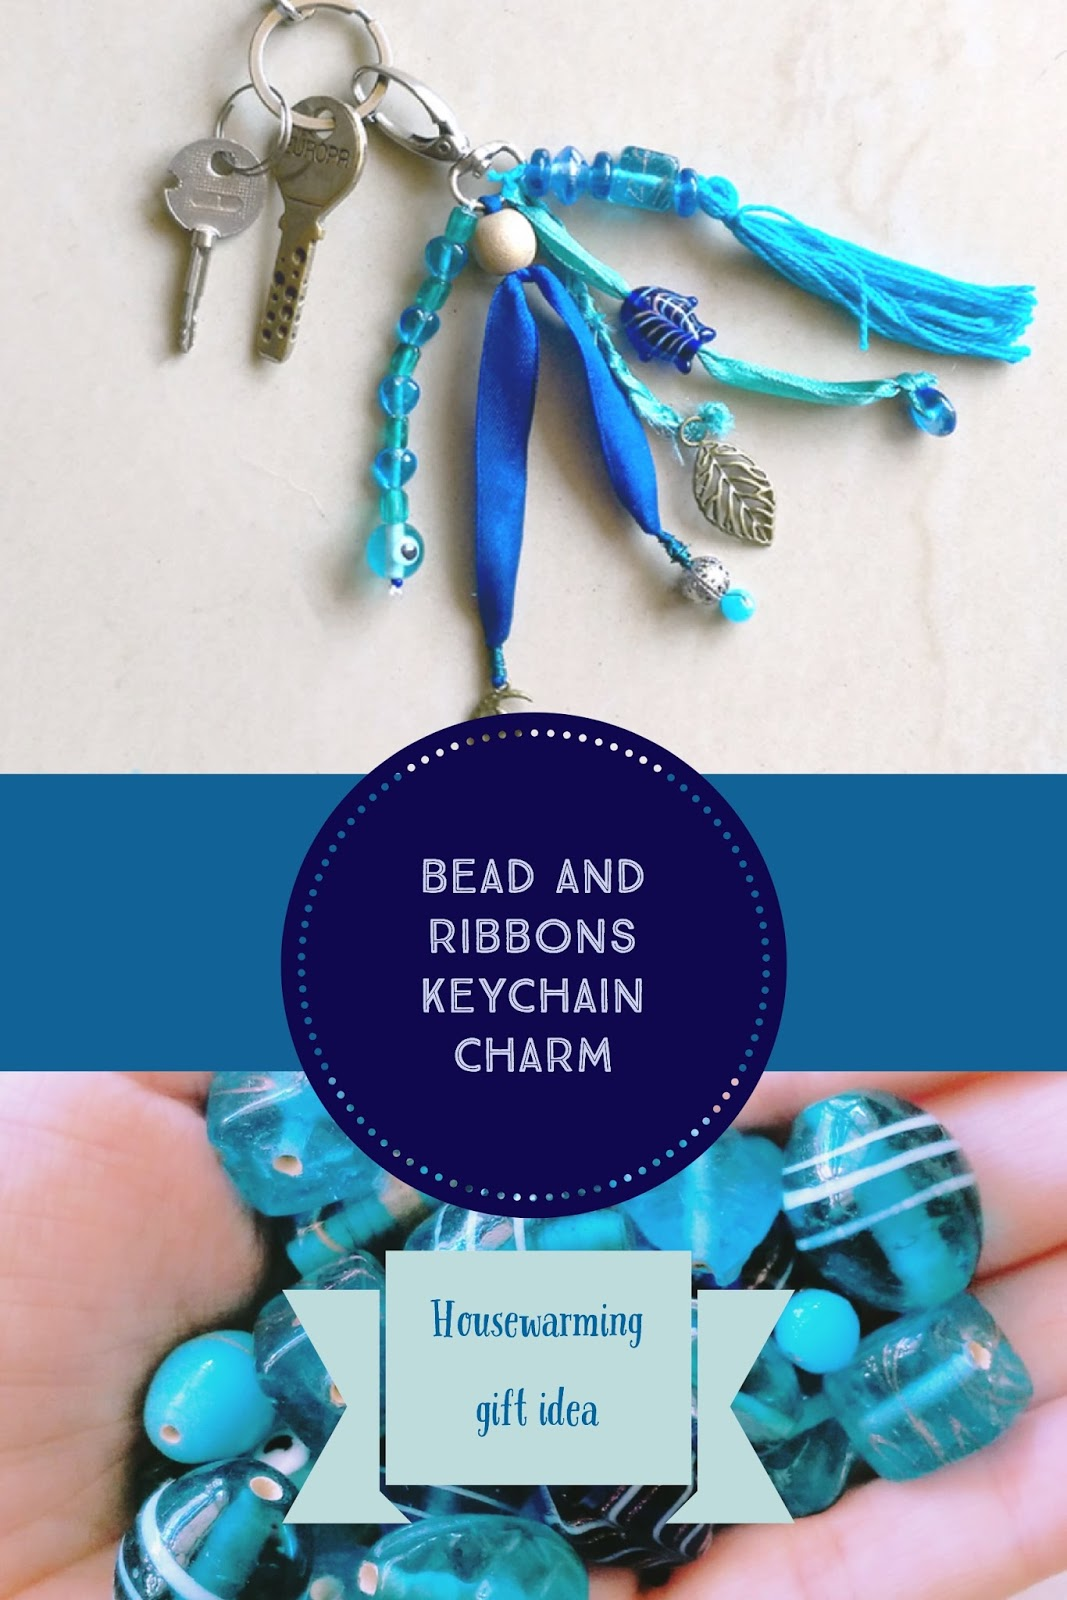 This cute keychain charm makes for a perfect housewarming gift on a budget